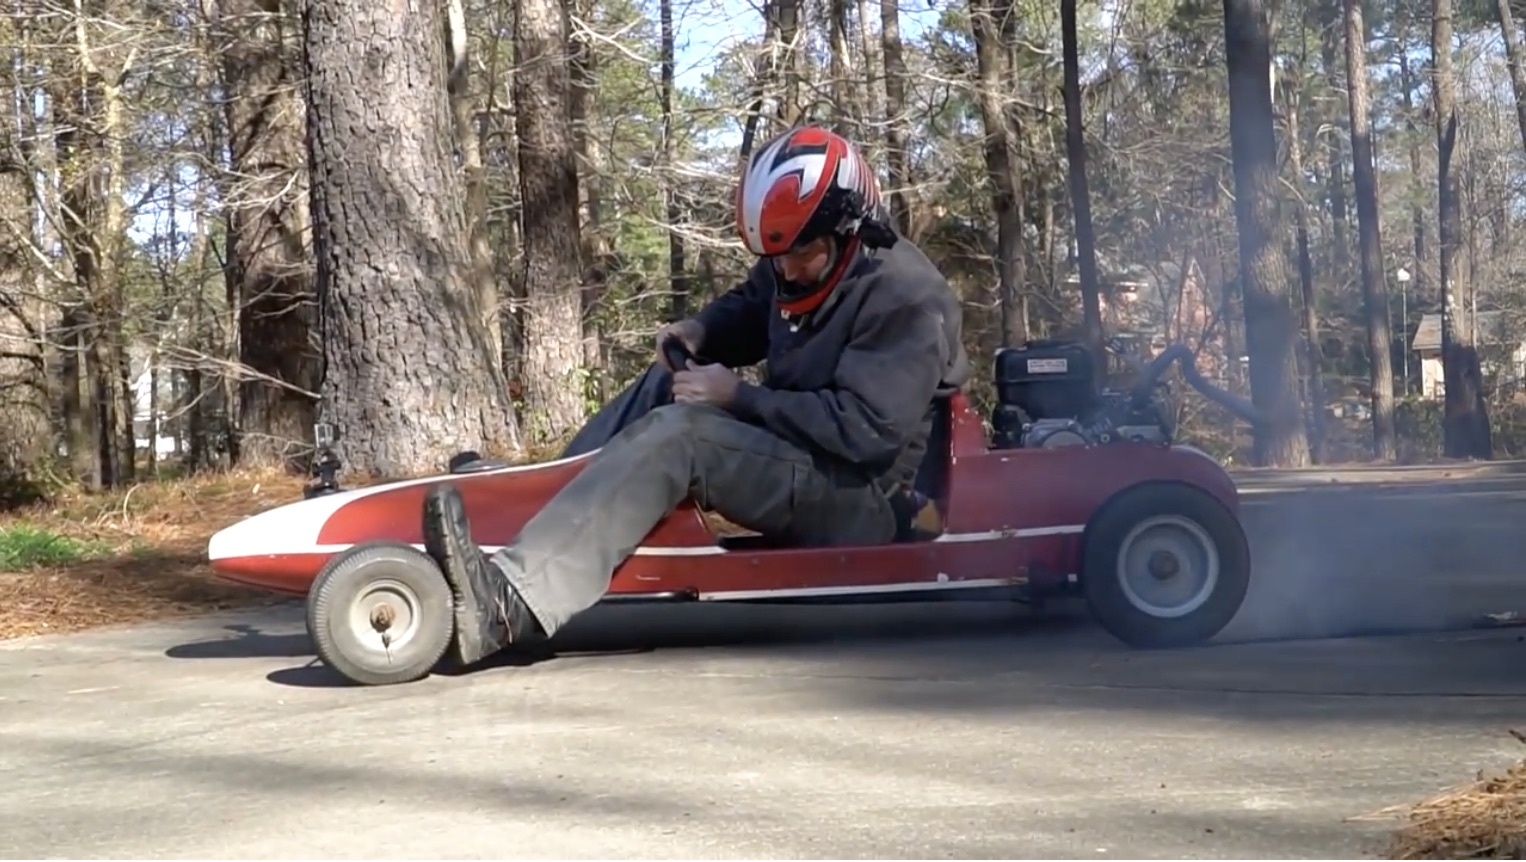 Kid-Friendly Burnout Machine: This Vintage Go Kart Can One-Wheel Peel Like A Mother!